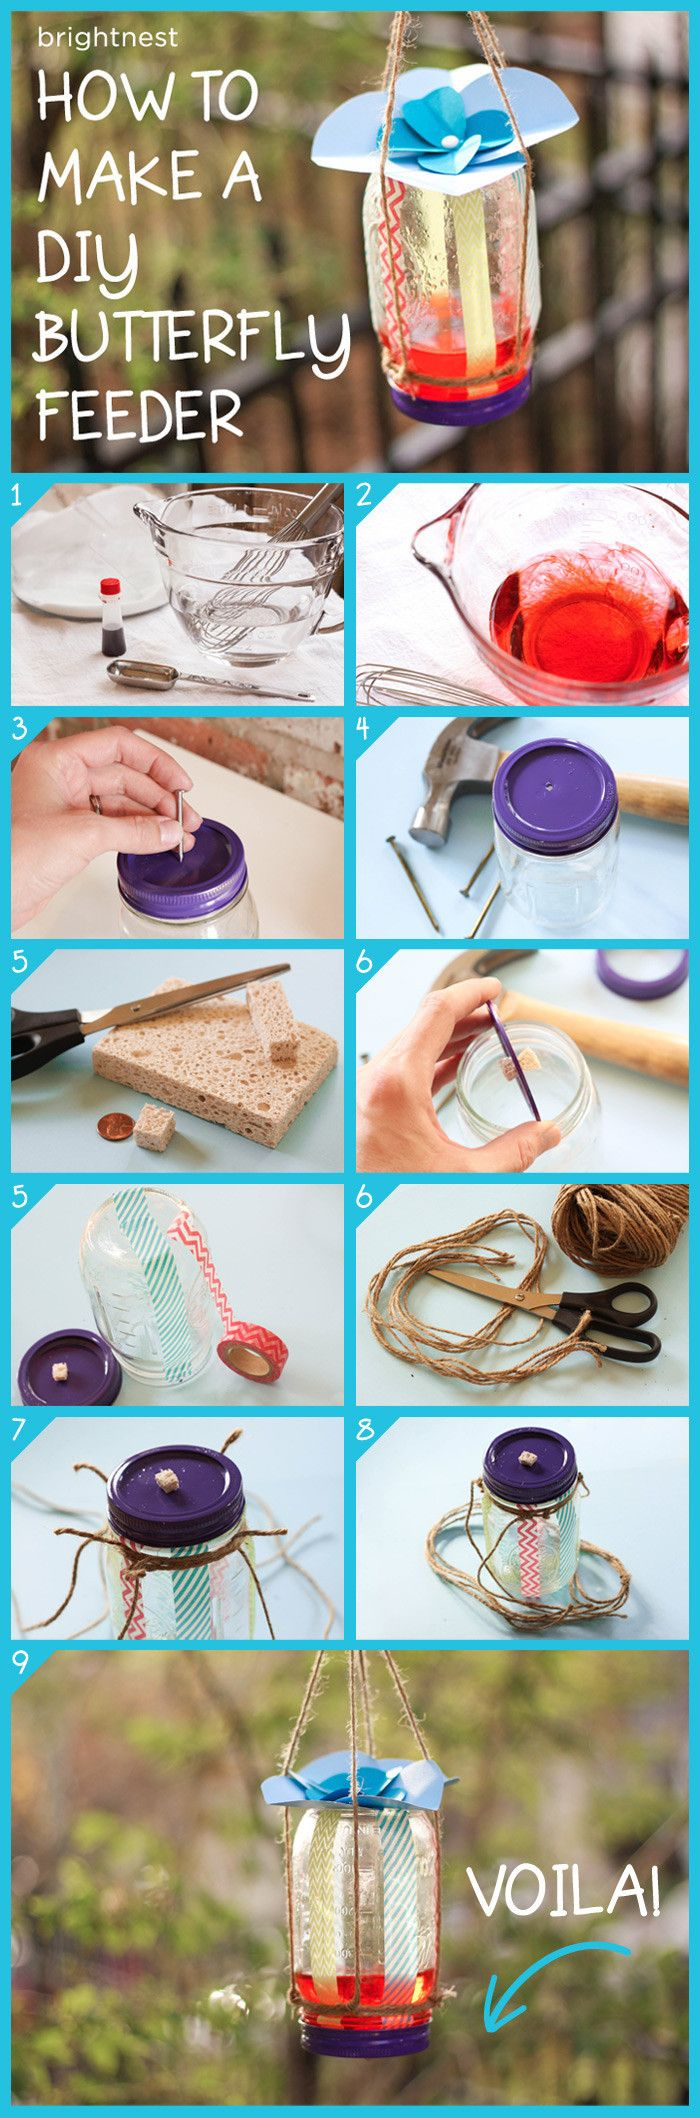 BrightNest | Attract Butterflies By Making A DIY Feeder in 6 Simple Steps #happyfamilysummer